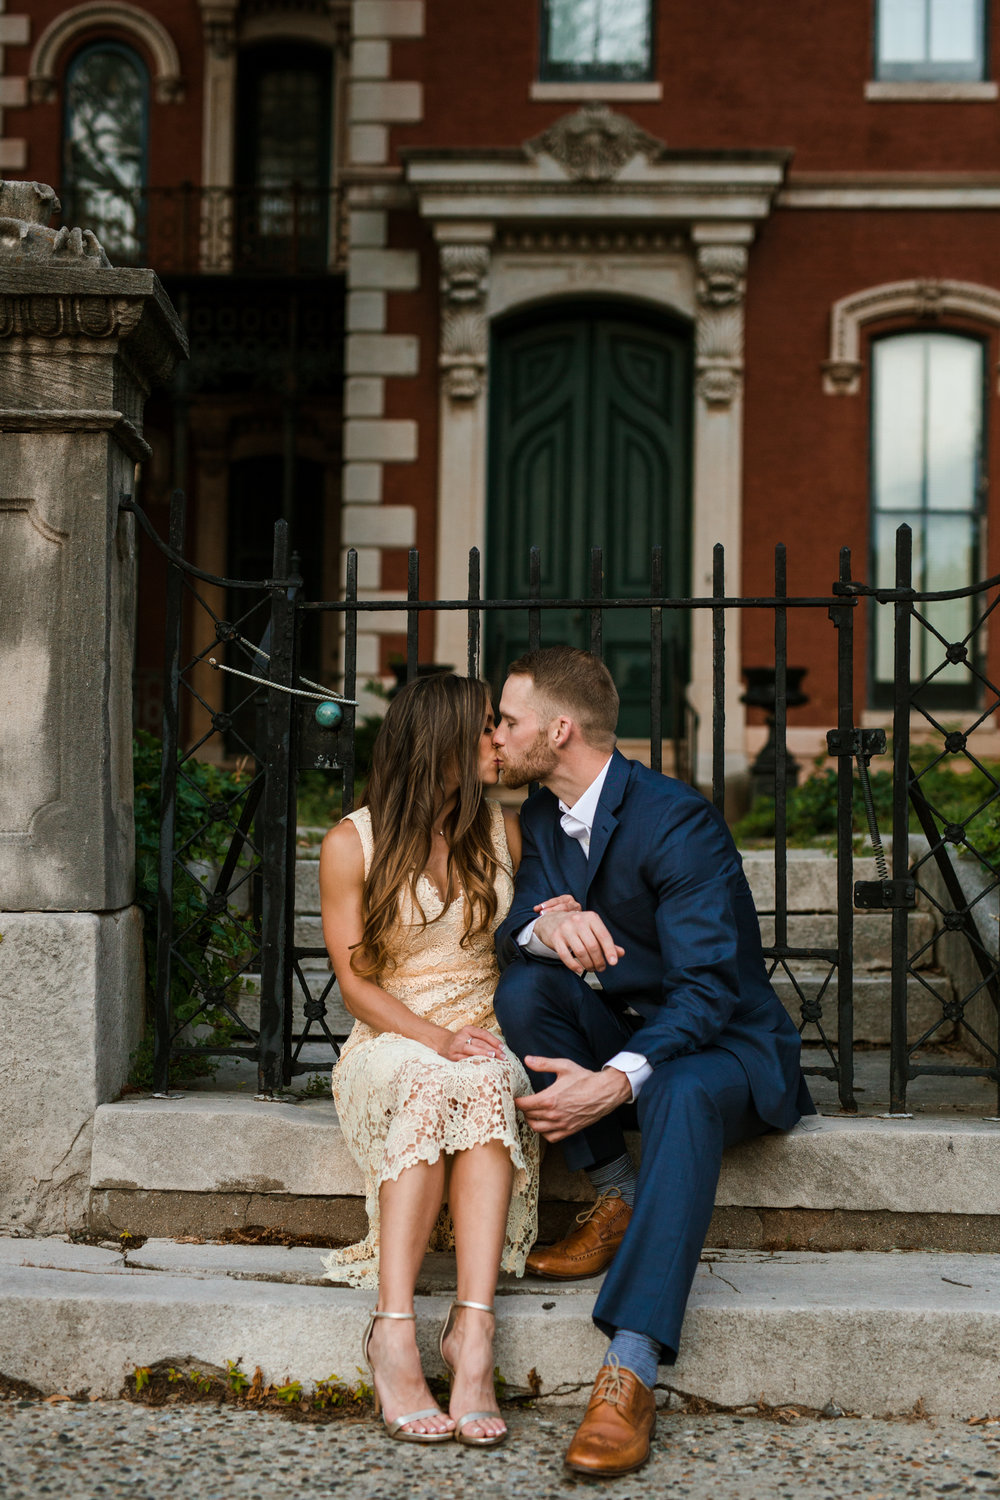 Victoria & Chad Engagement 2018 Crystal Ludwick Photo Louisville Kentucky Wedding Photographer WEBSITE (35 of 48).jpg